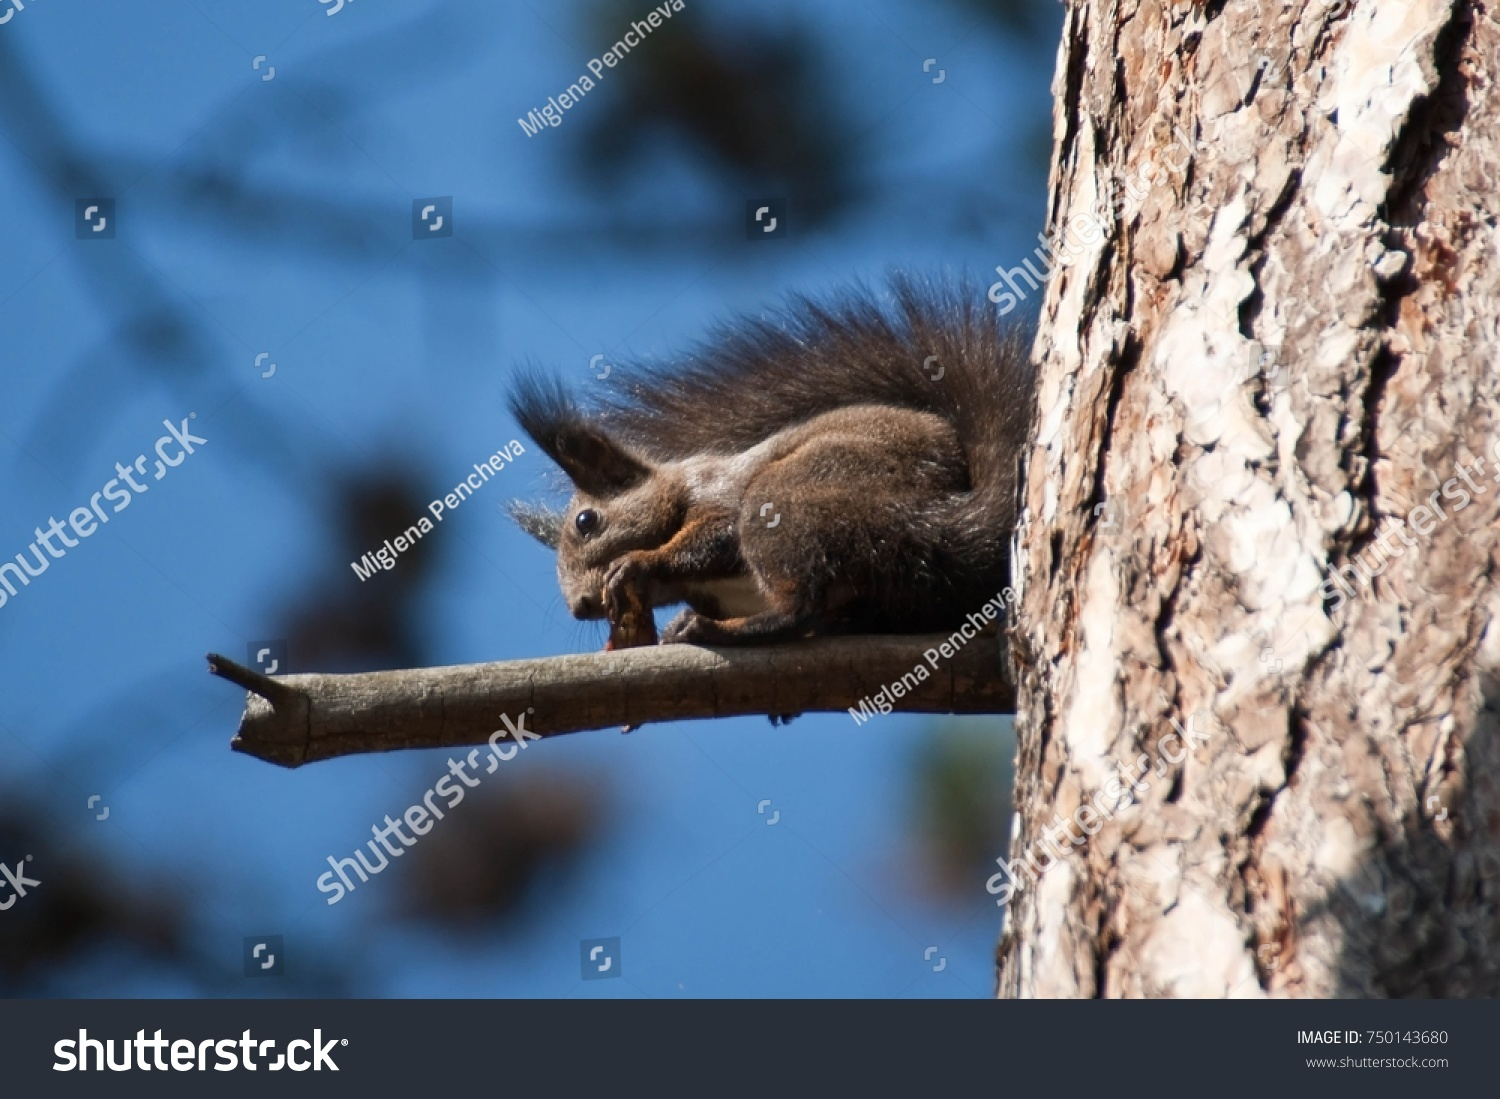 Cute Little Brown Squirrel Long Tail Stock Photo (Royalty Free ...